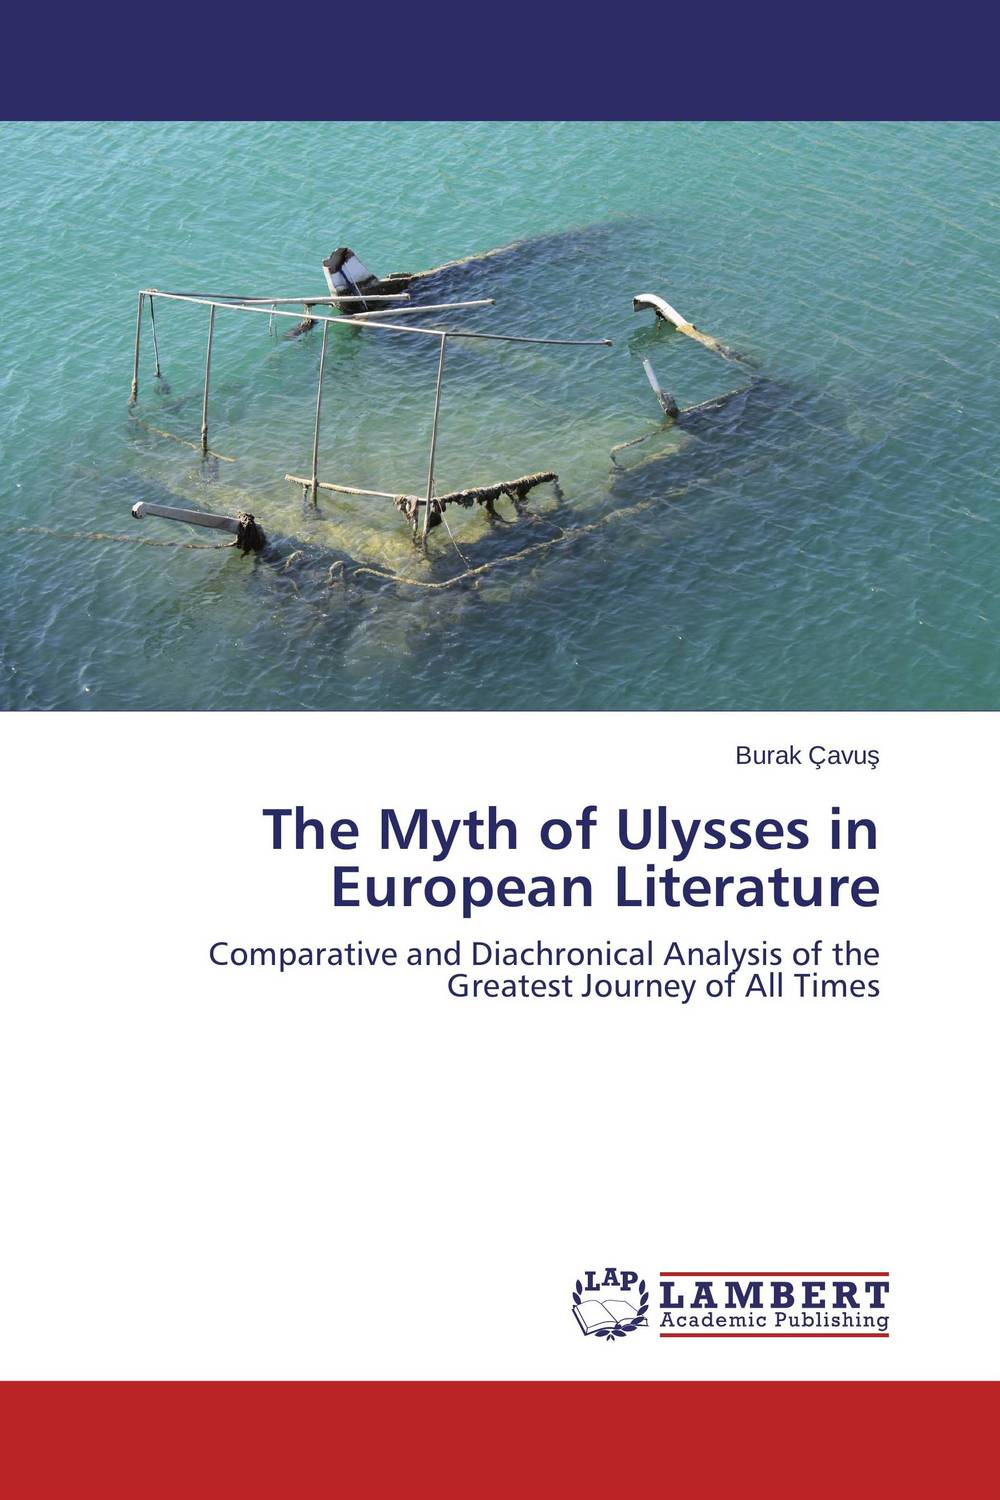 The Myth of Ulysses in European Literature the comedy of errors